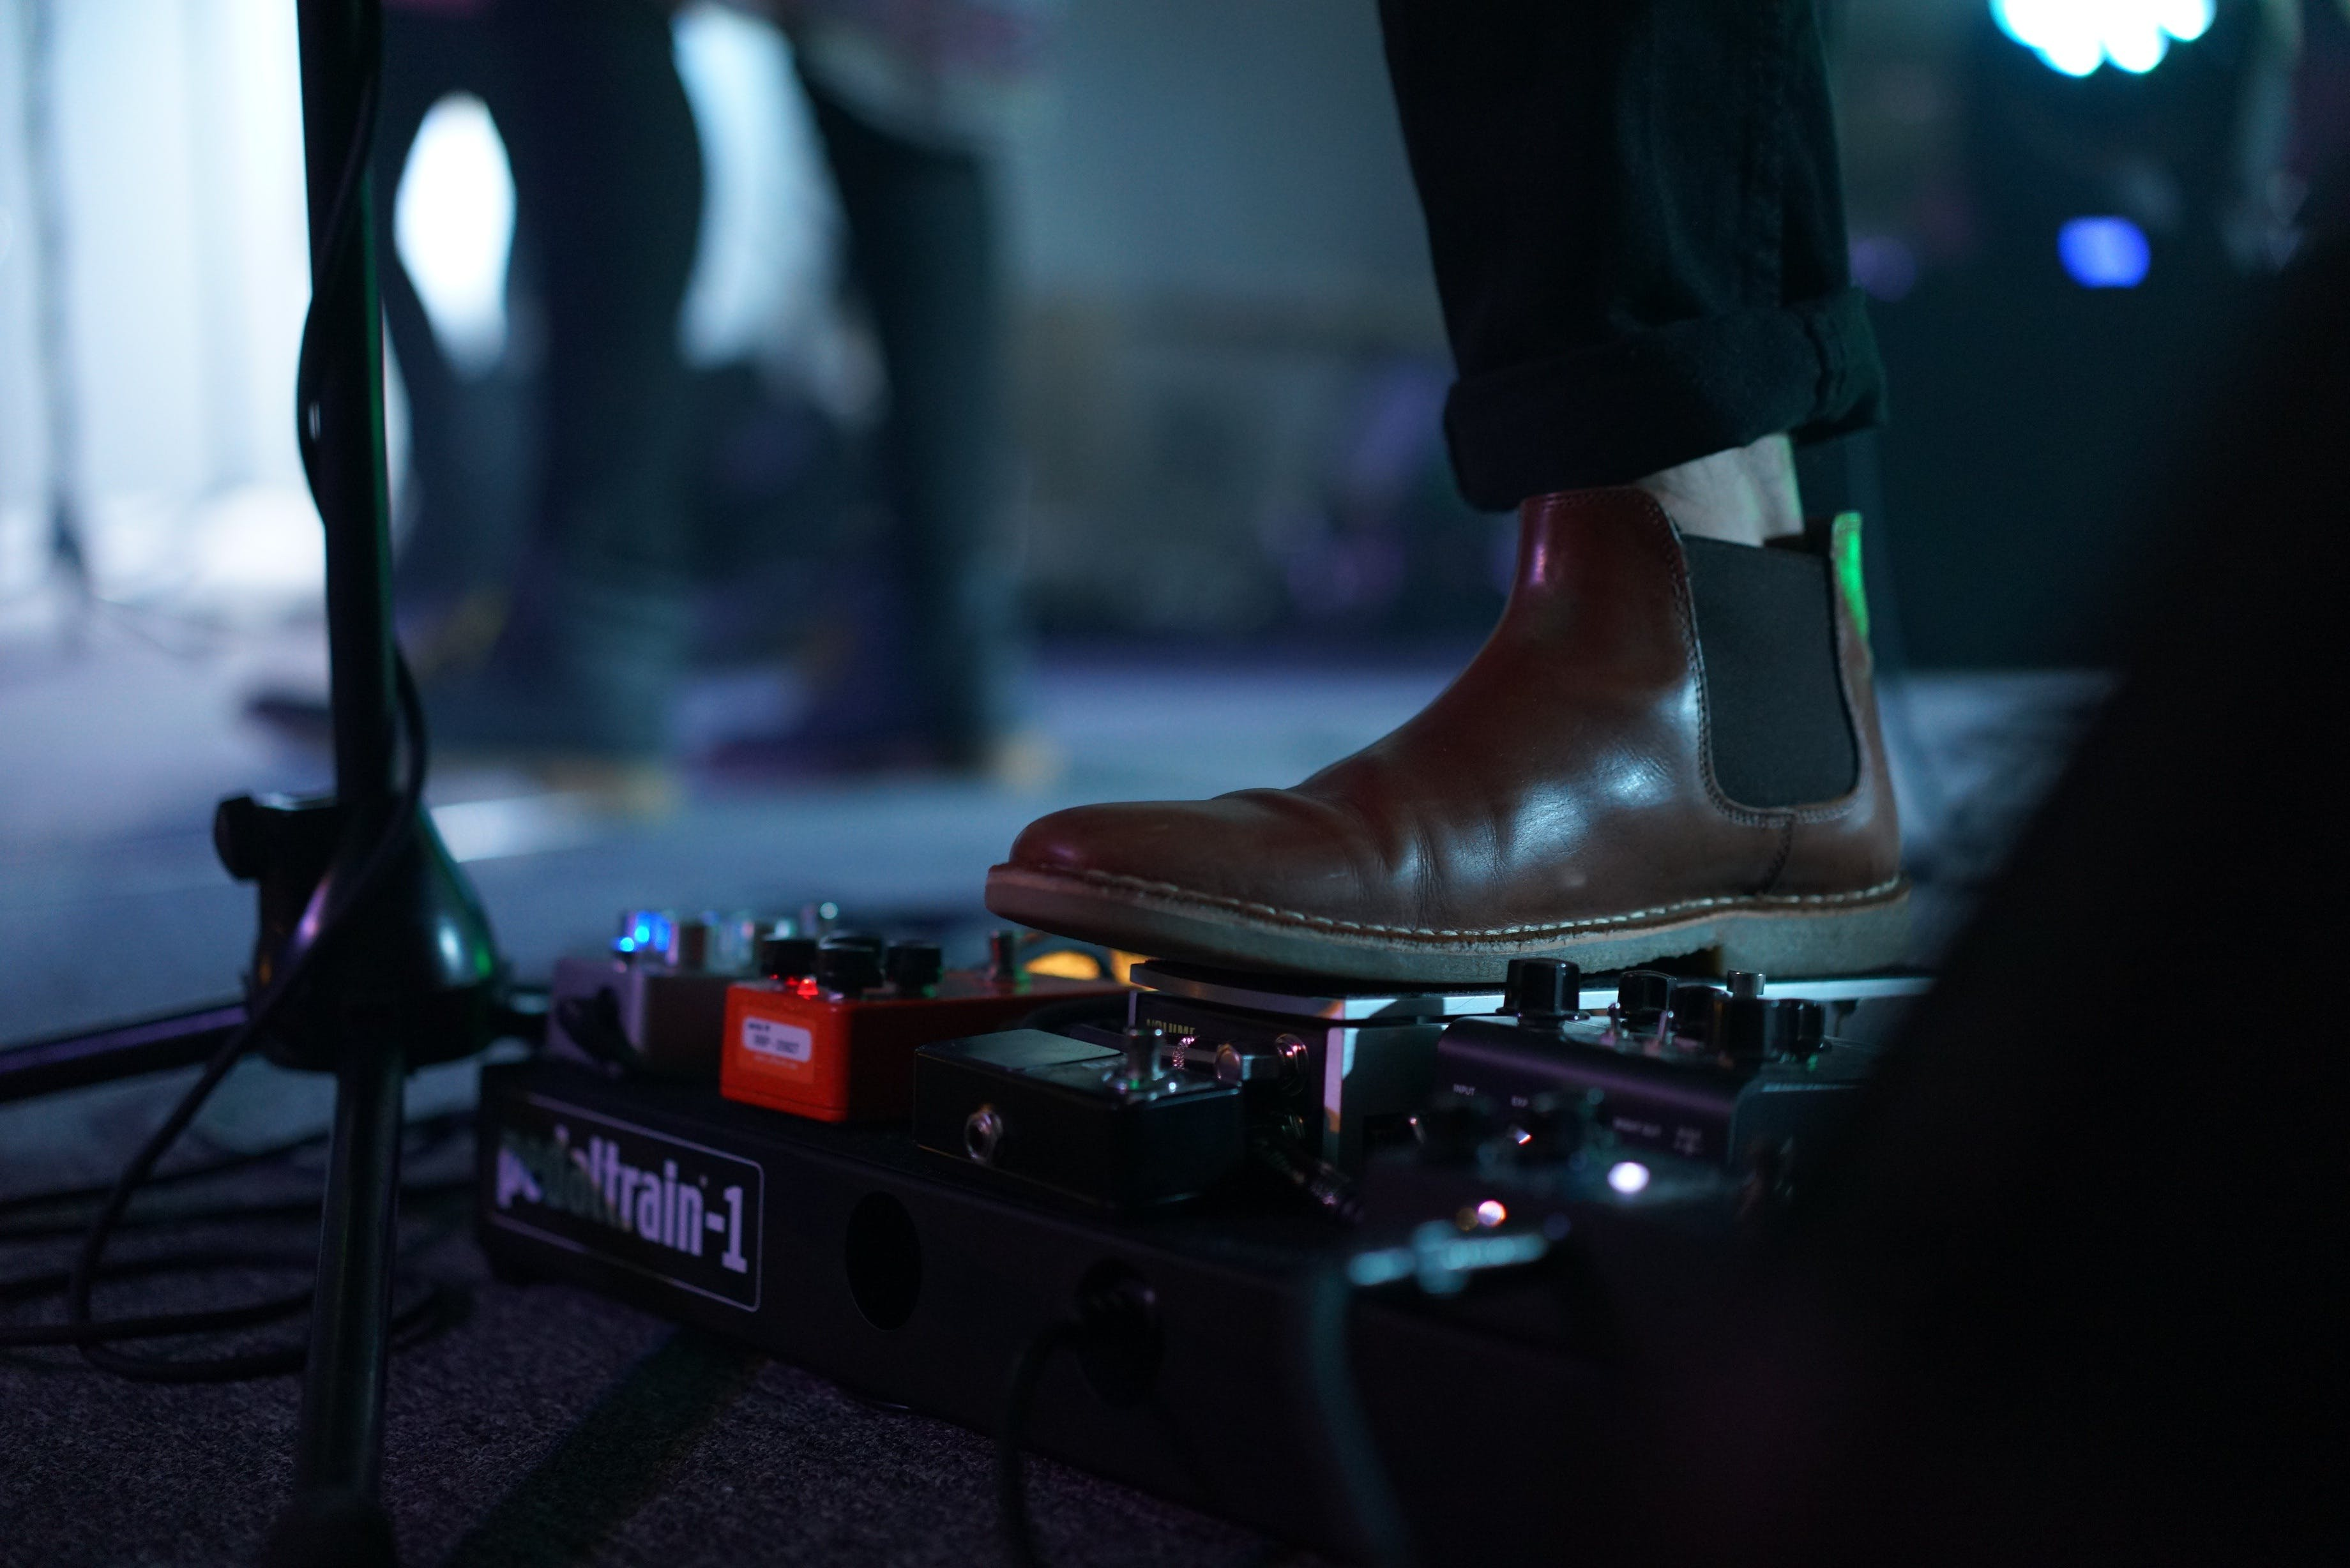 Free stock photo of instrument, pedals, piano, sound